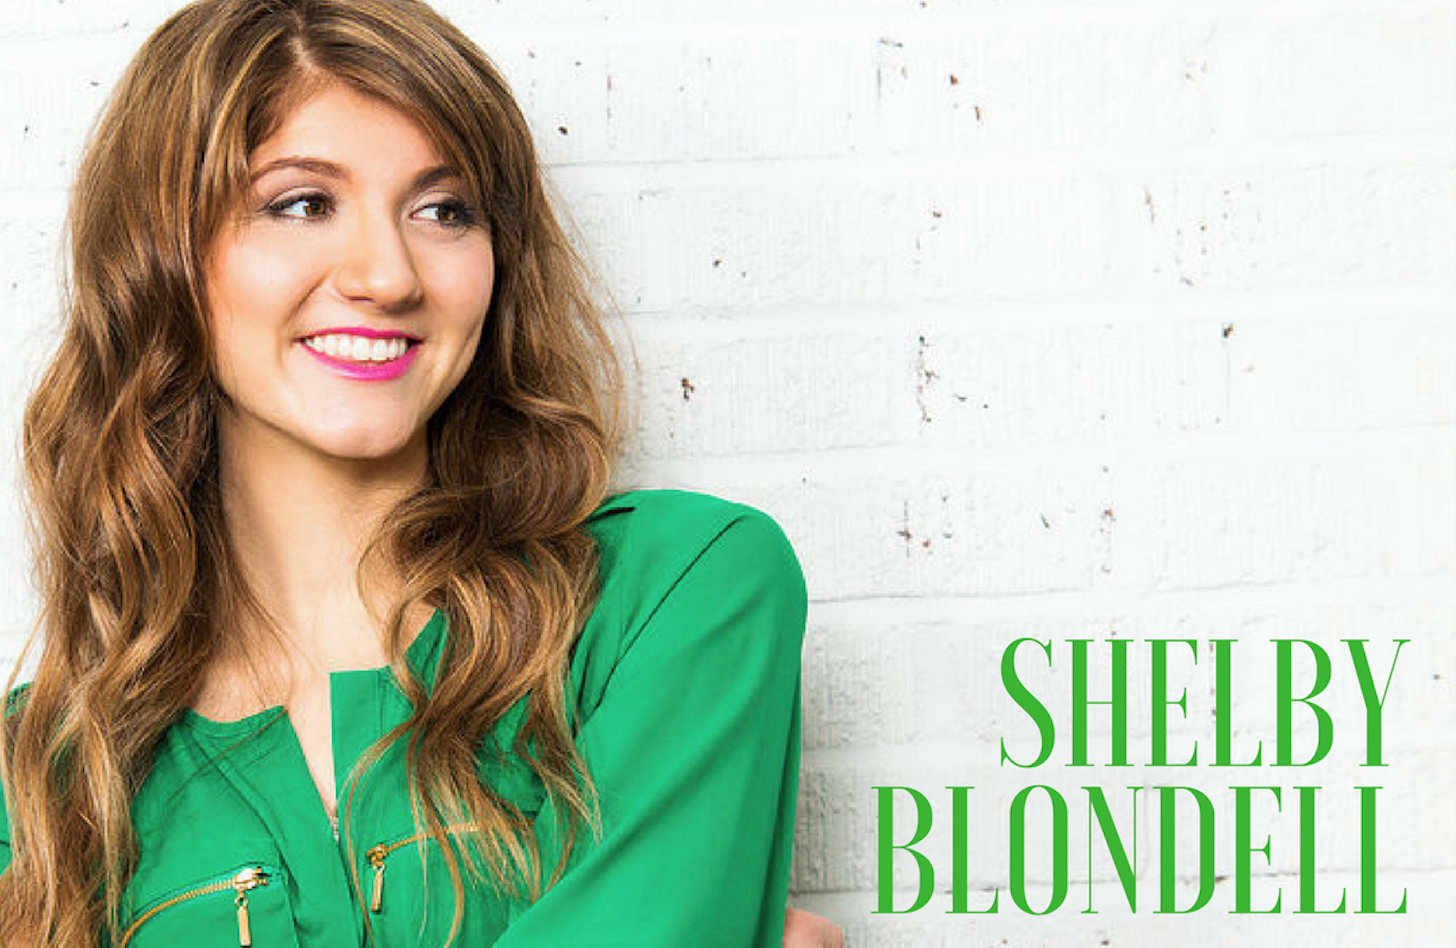 Shelby Blondell A Life that Makes an Impact